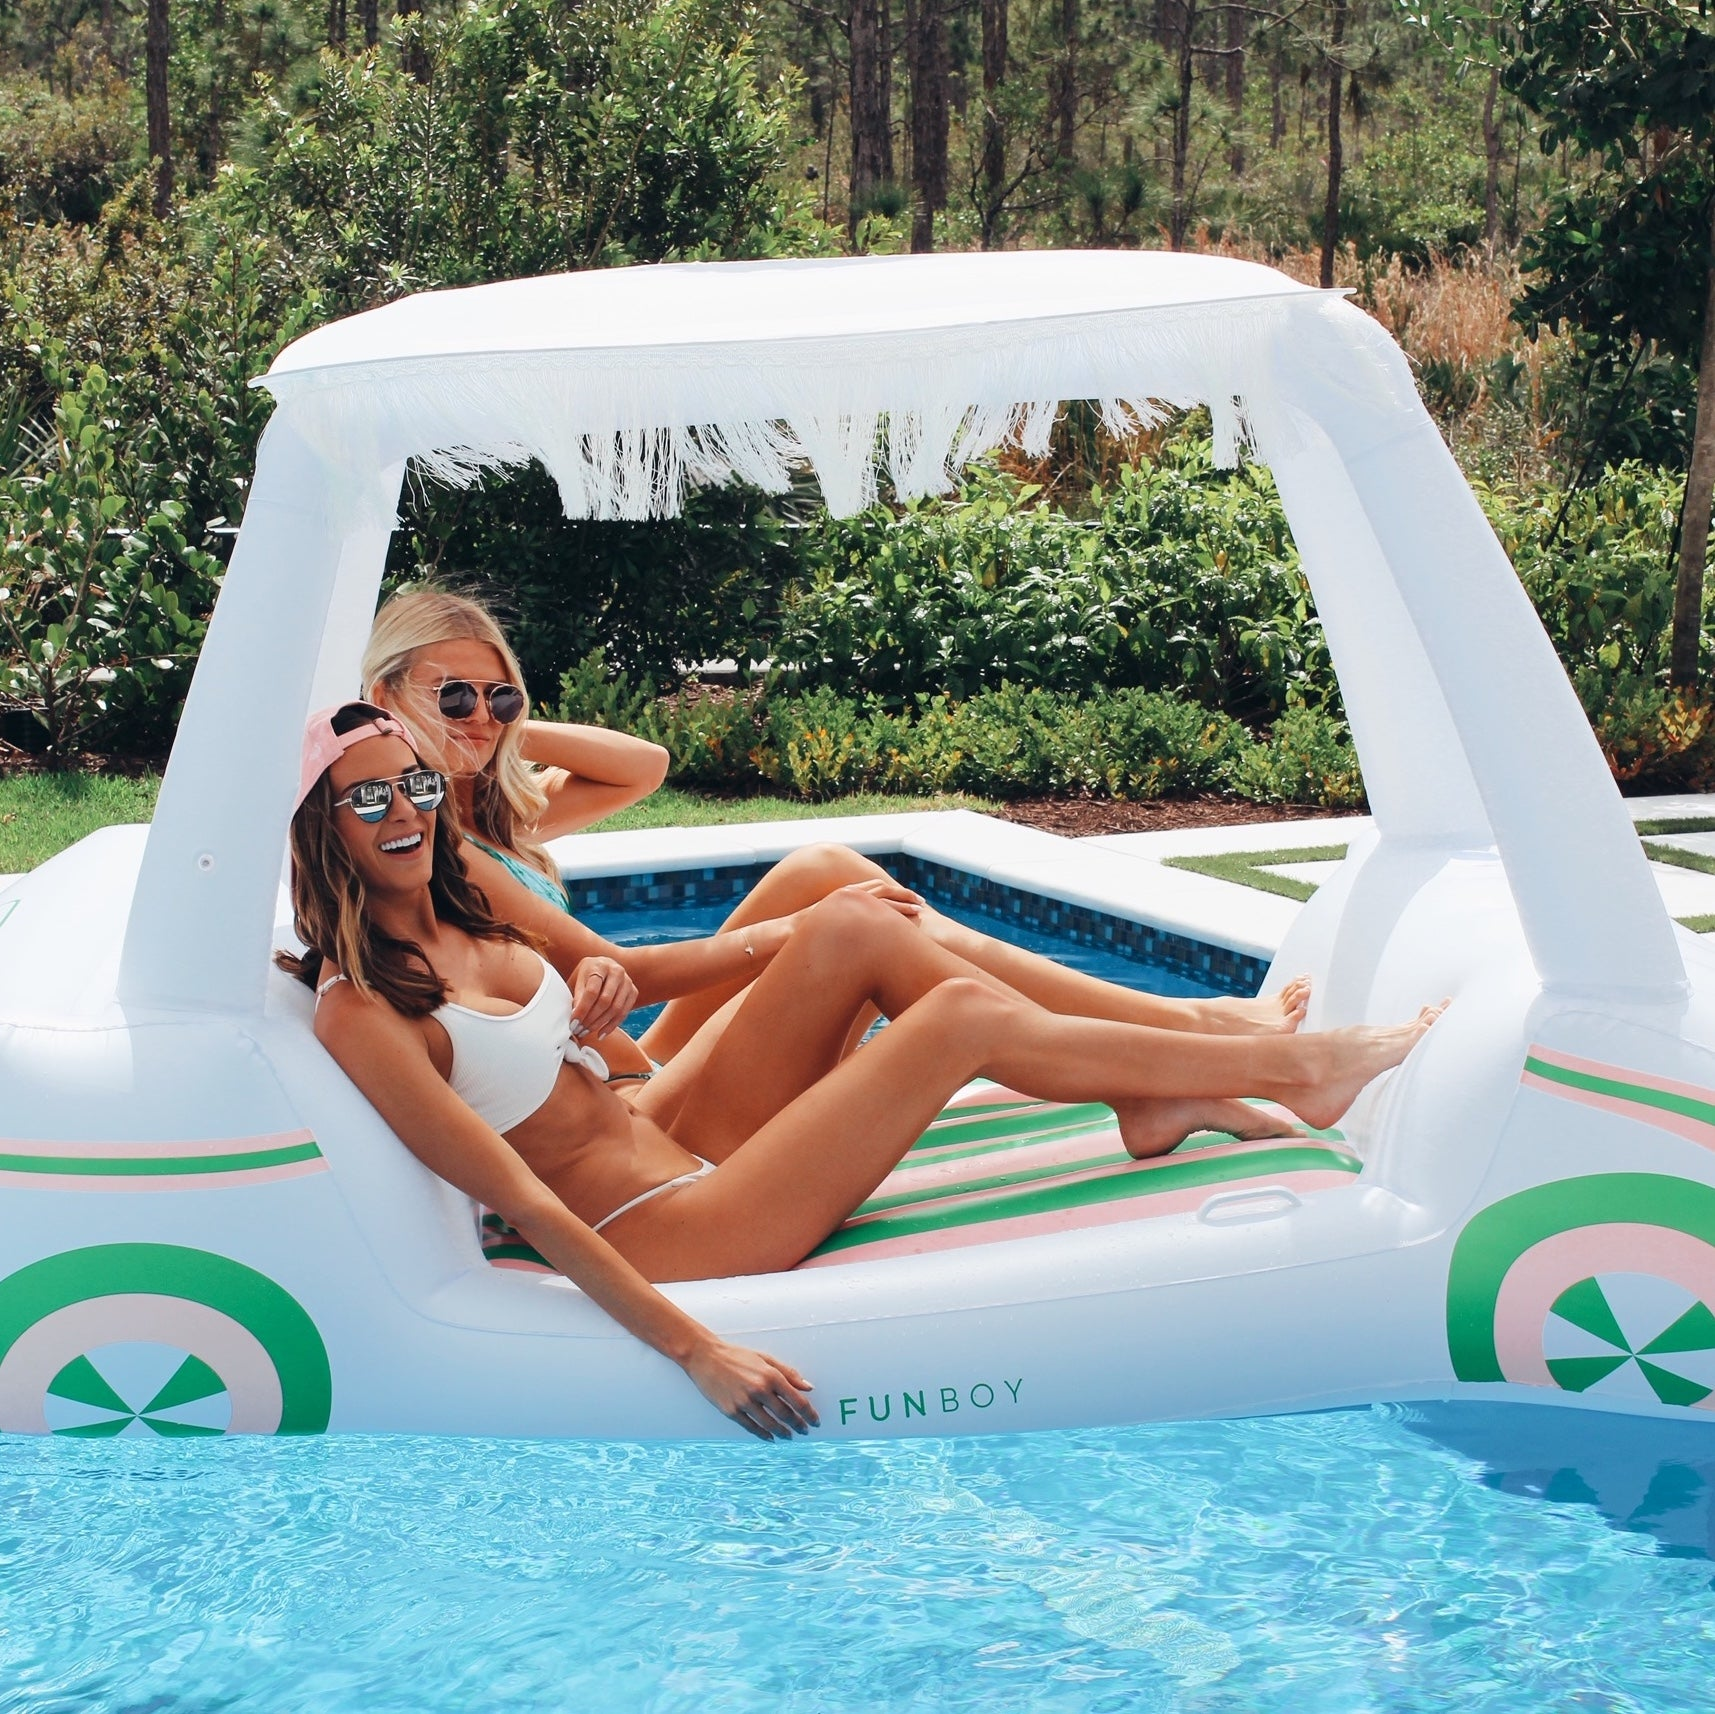 Jena Sims and Tori Slater on FUNBOY's new luxury Golf Cart Float!